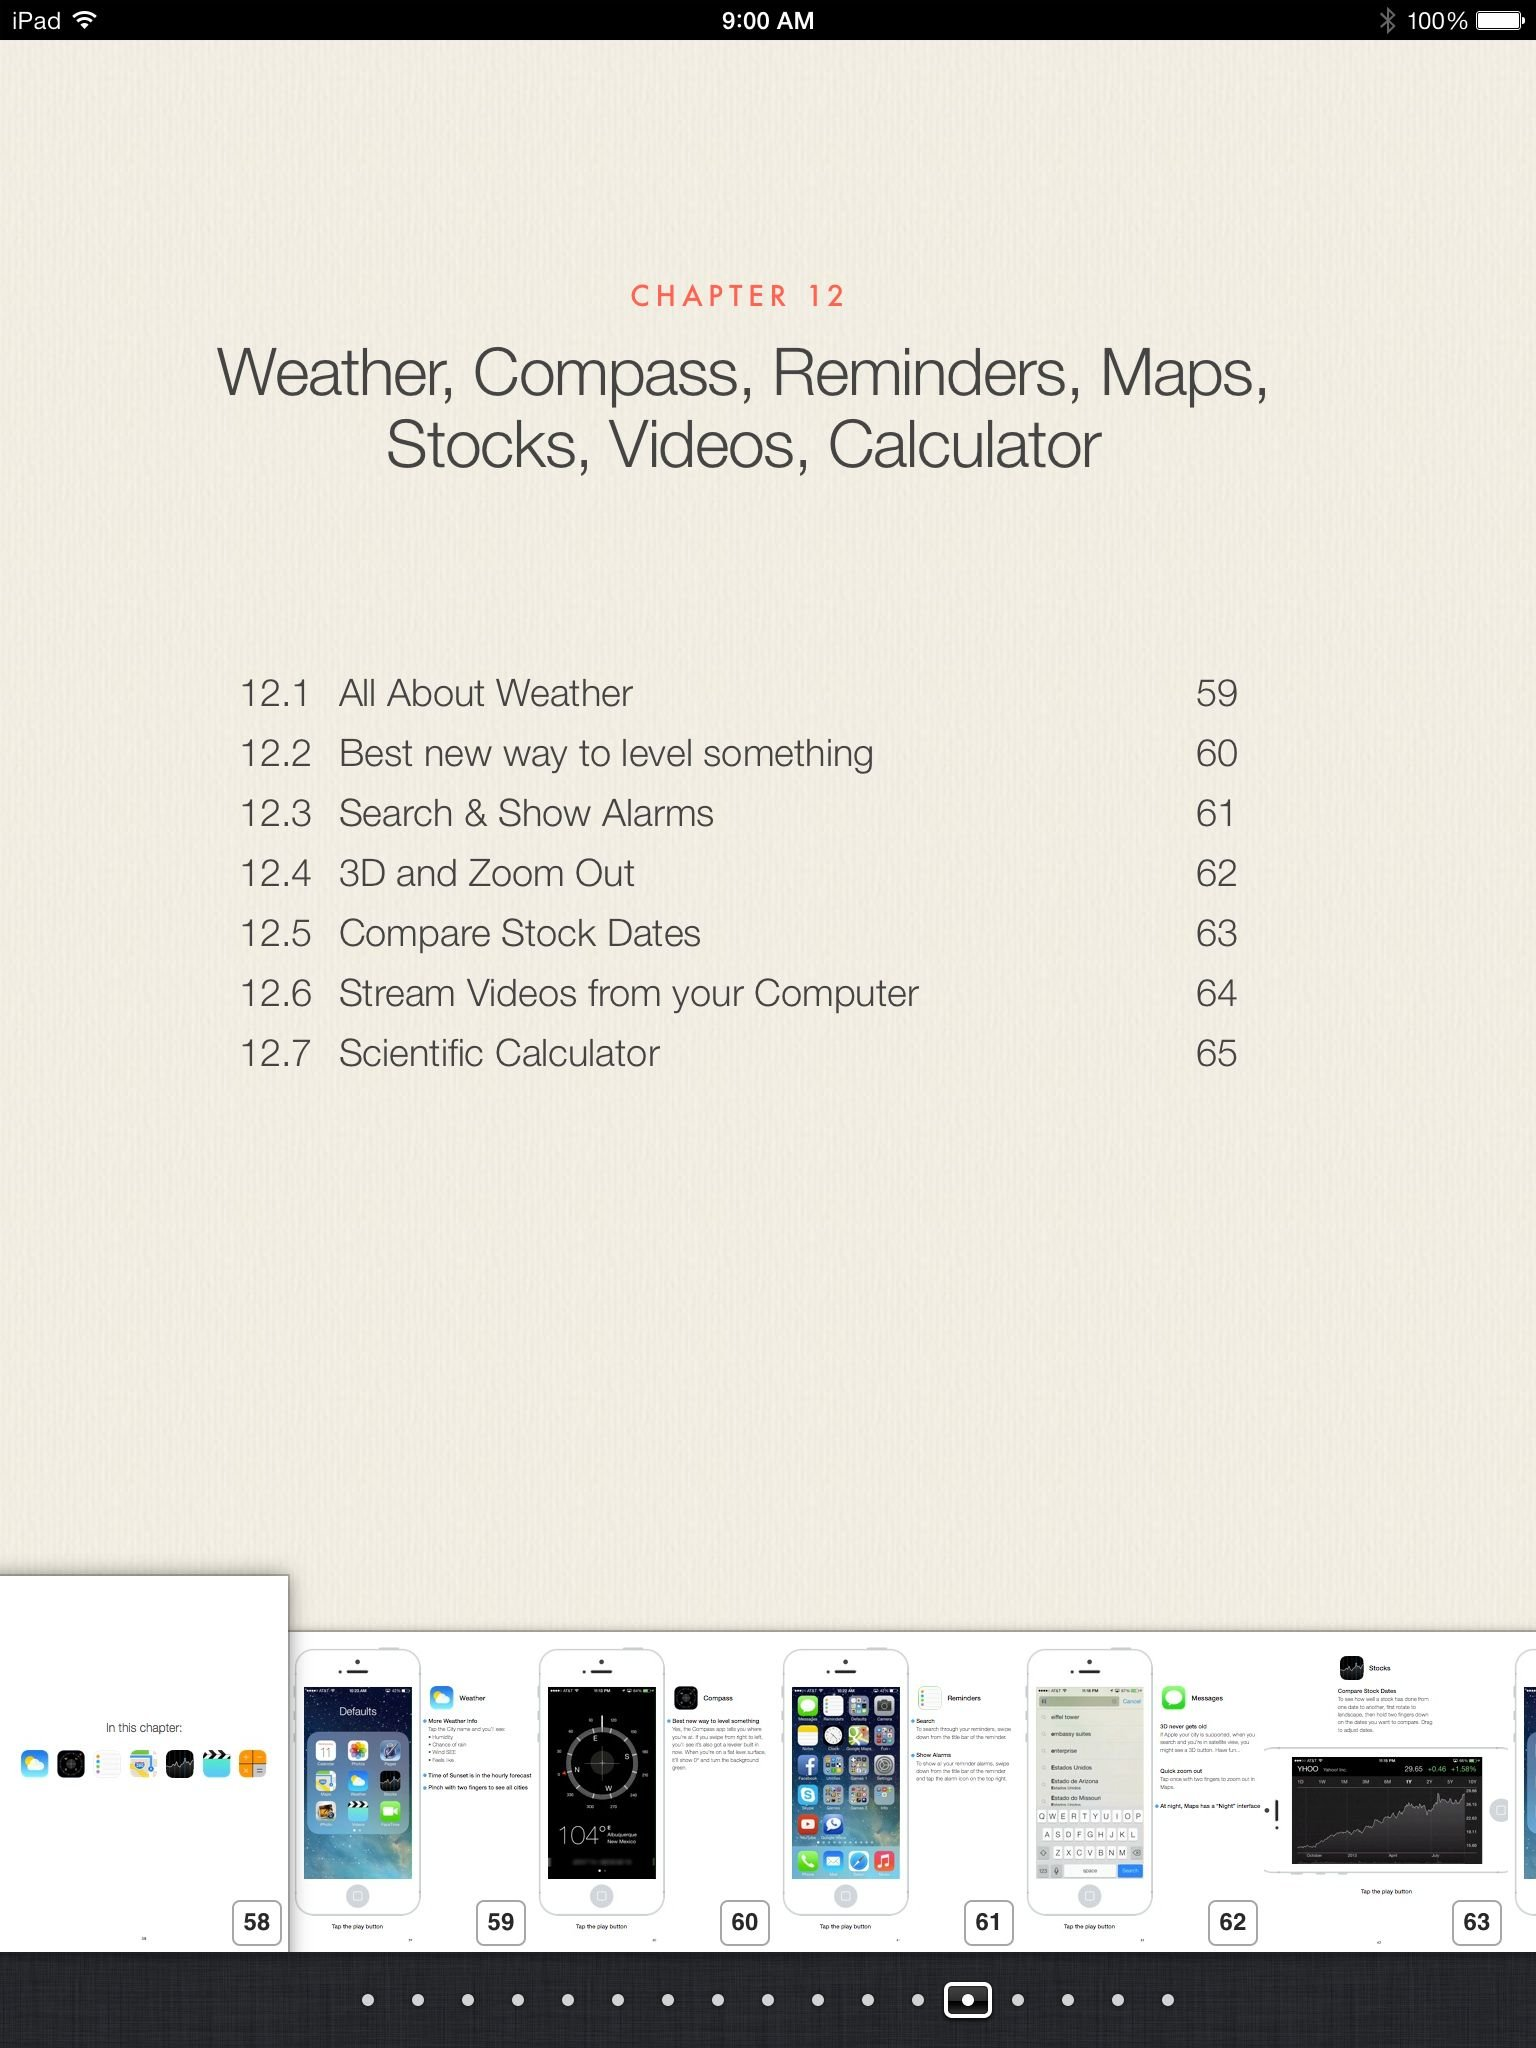 Ios7 tips - Magazine cover